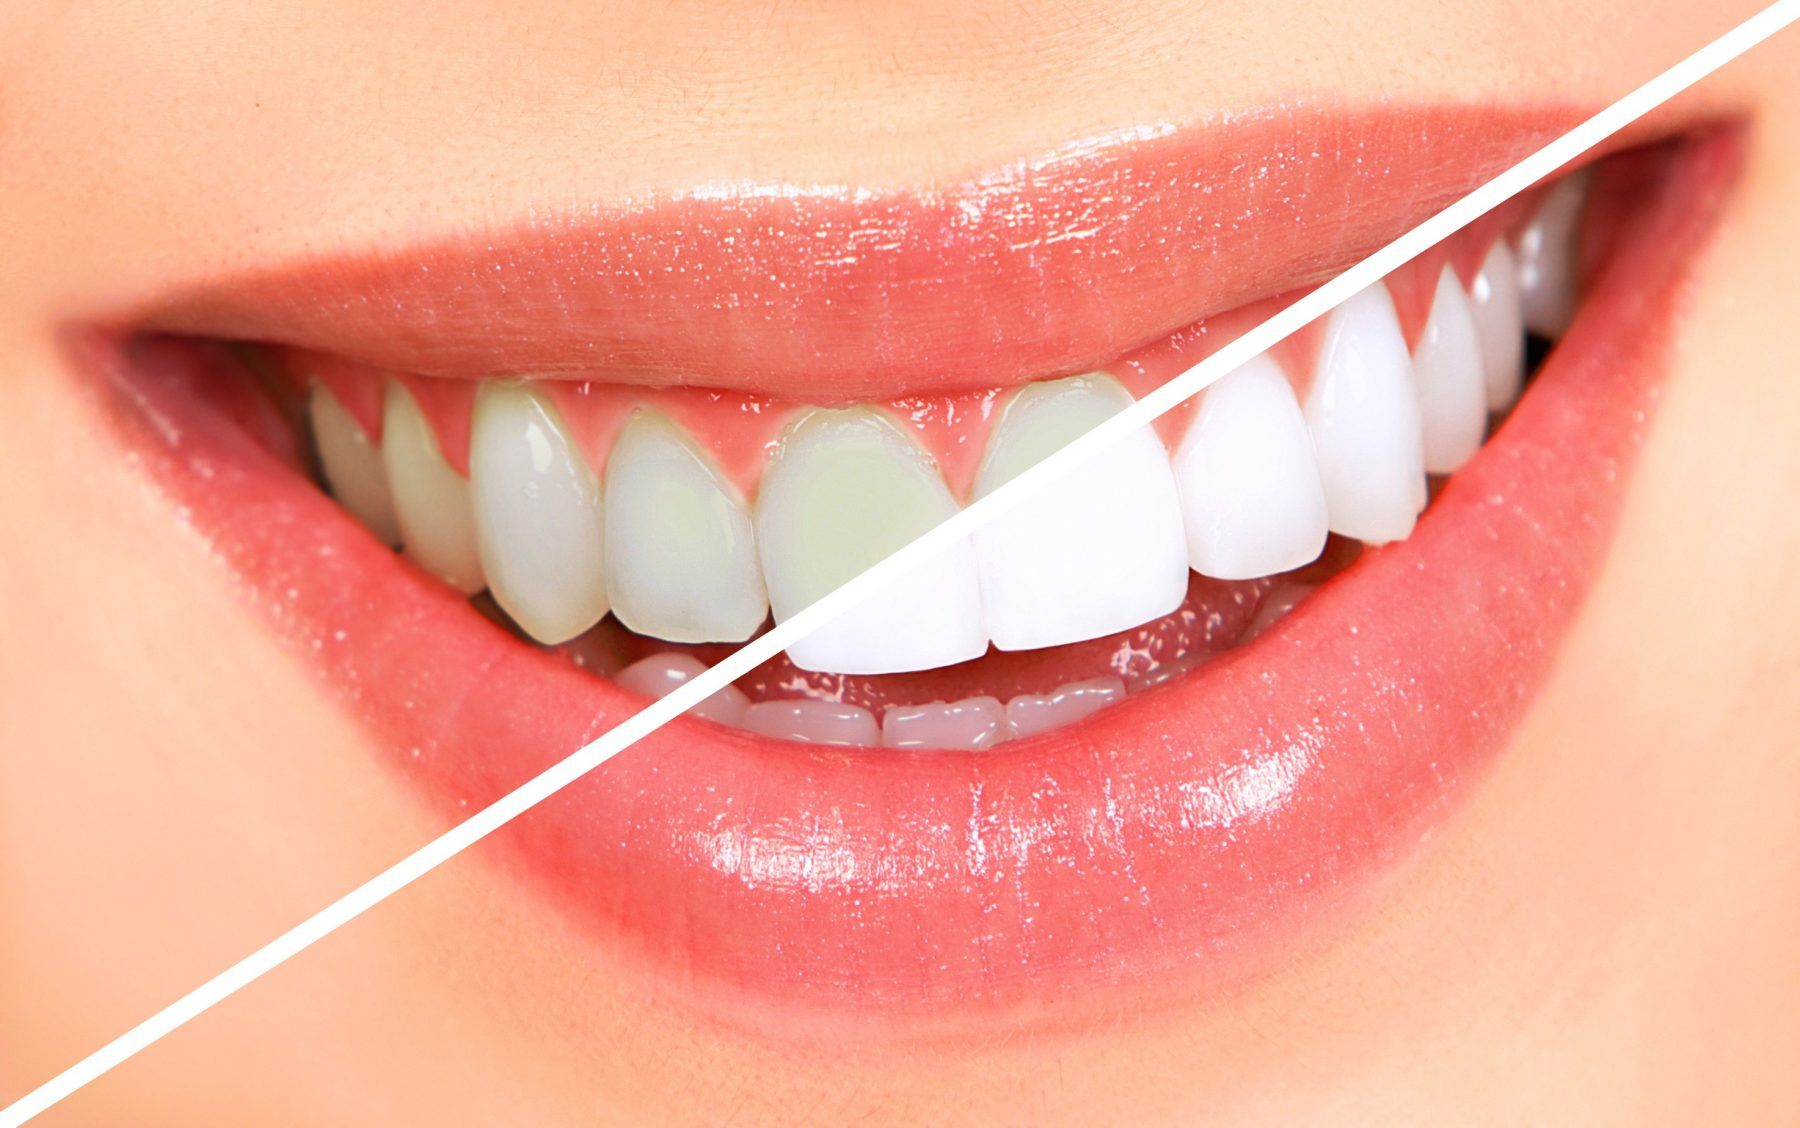 How Long Does Teeth Whitening Take?